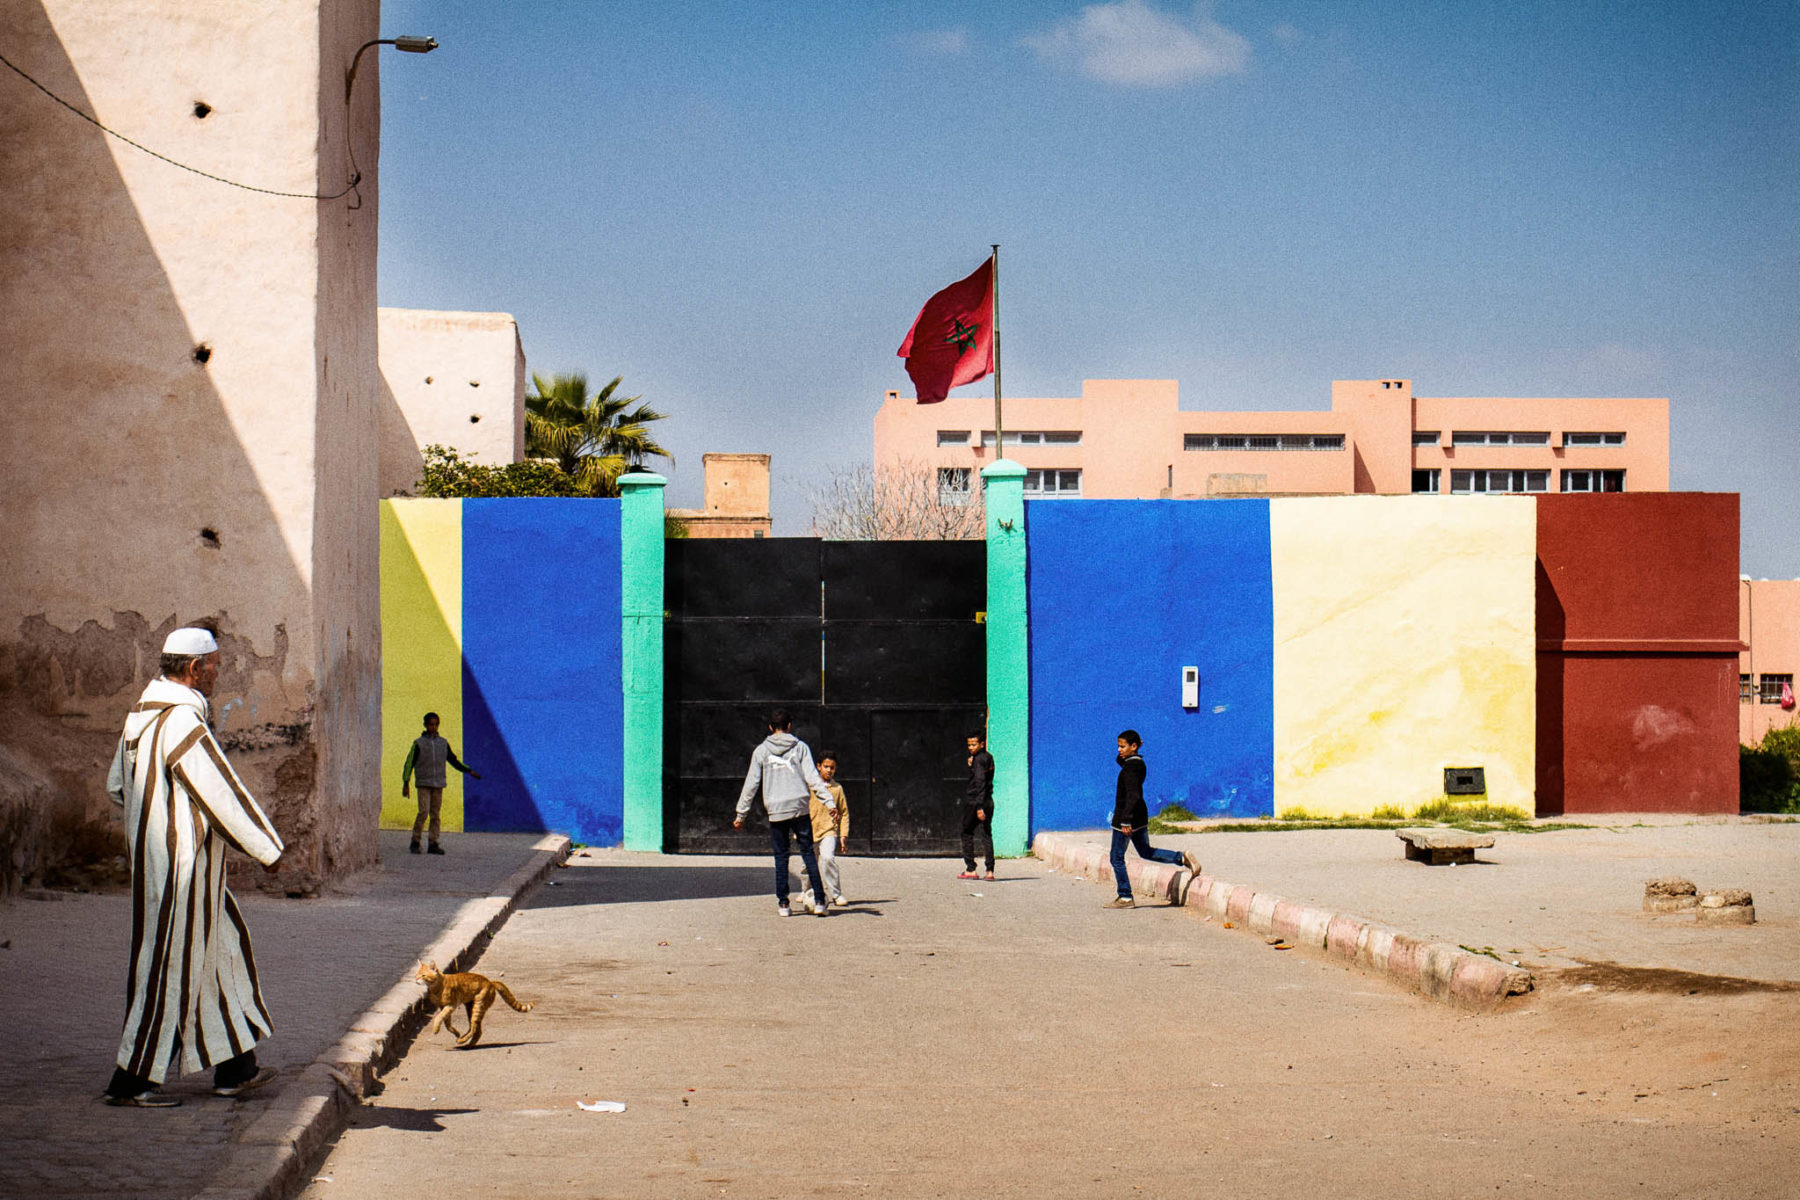 Morocco - Marrakech street scene outside the Bab Doukala - street photography - Mike Bielski